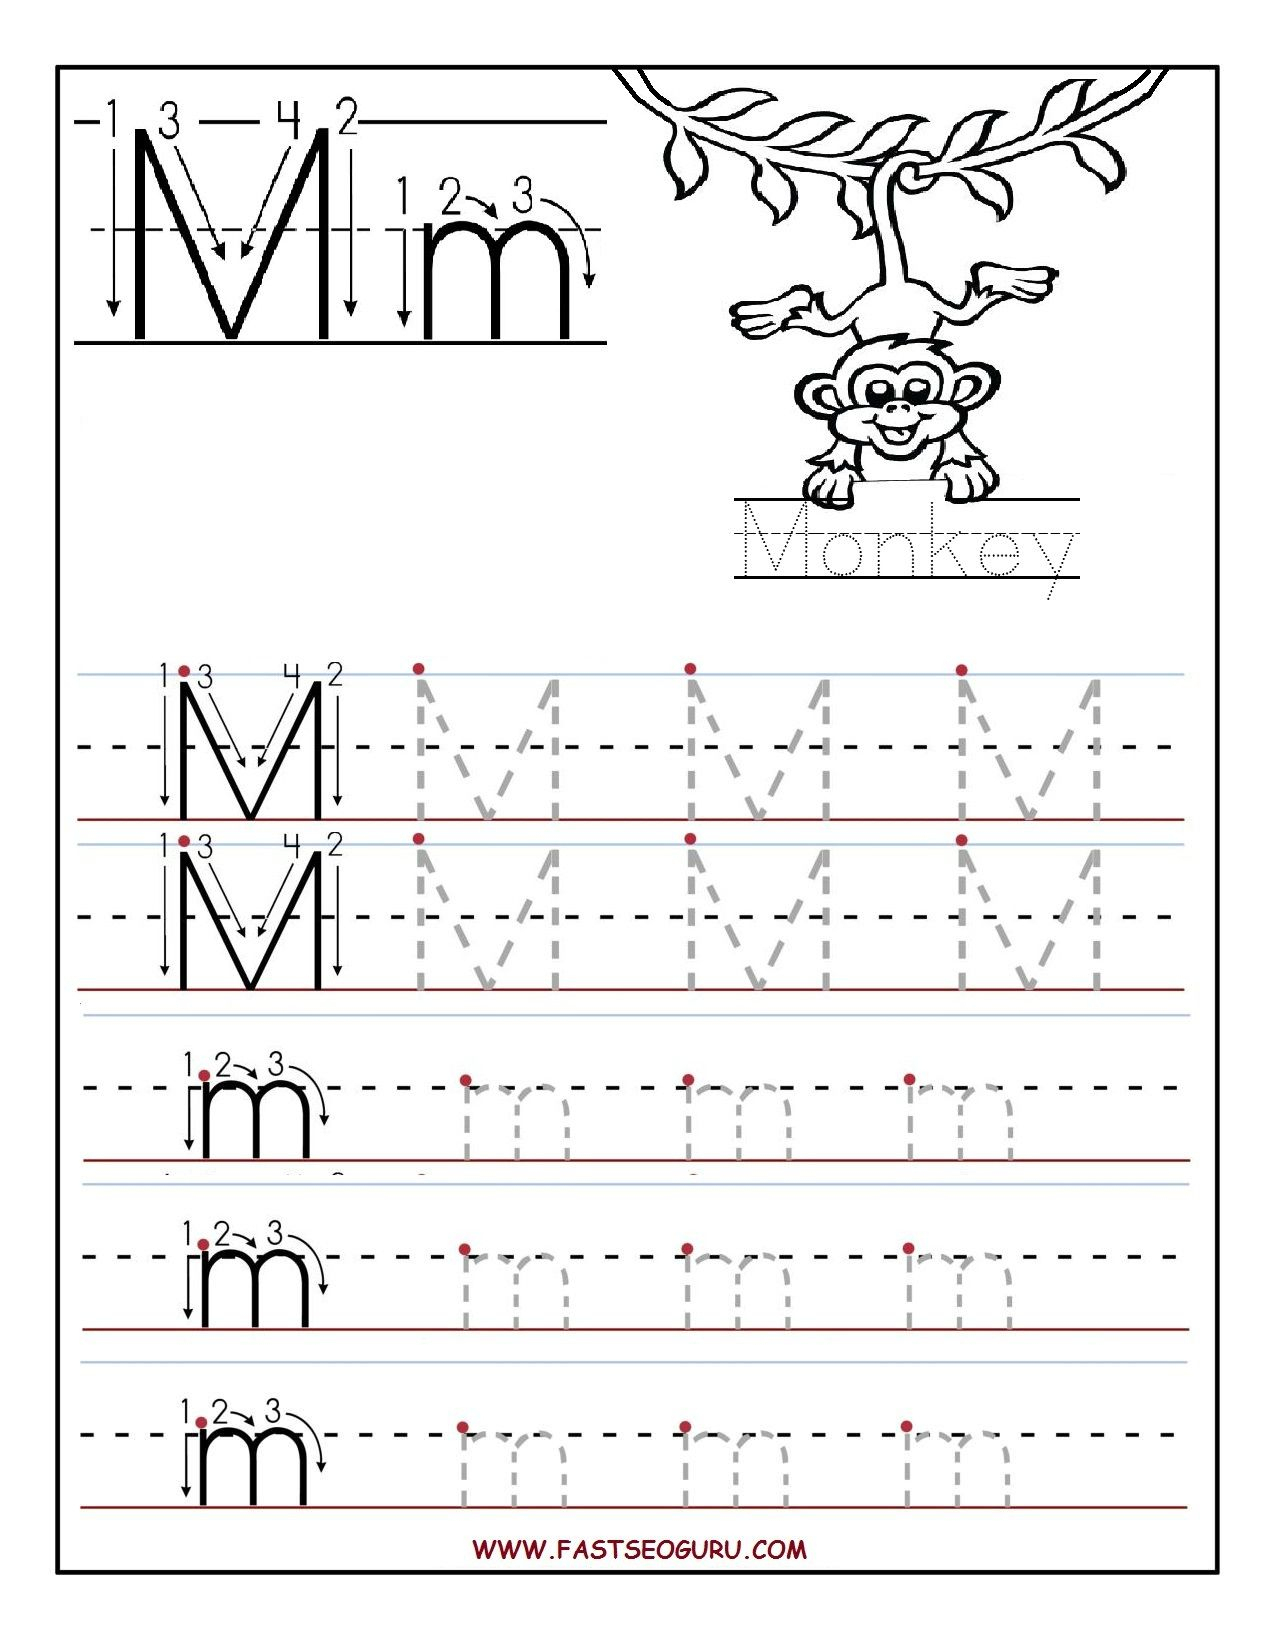 Printable Letter M Tracing Worksheets For Preschool | Pre School | Letter M Printable Worksheets